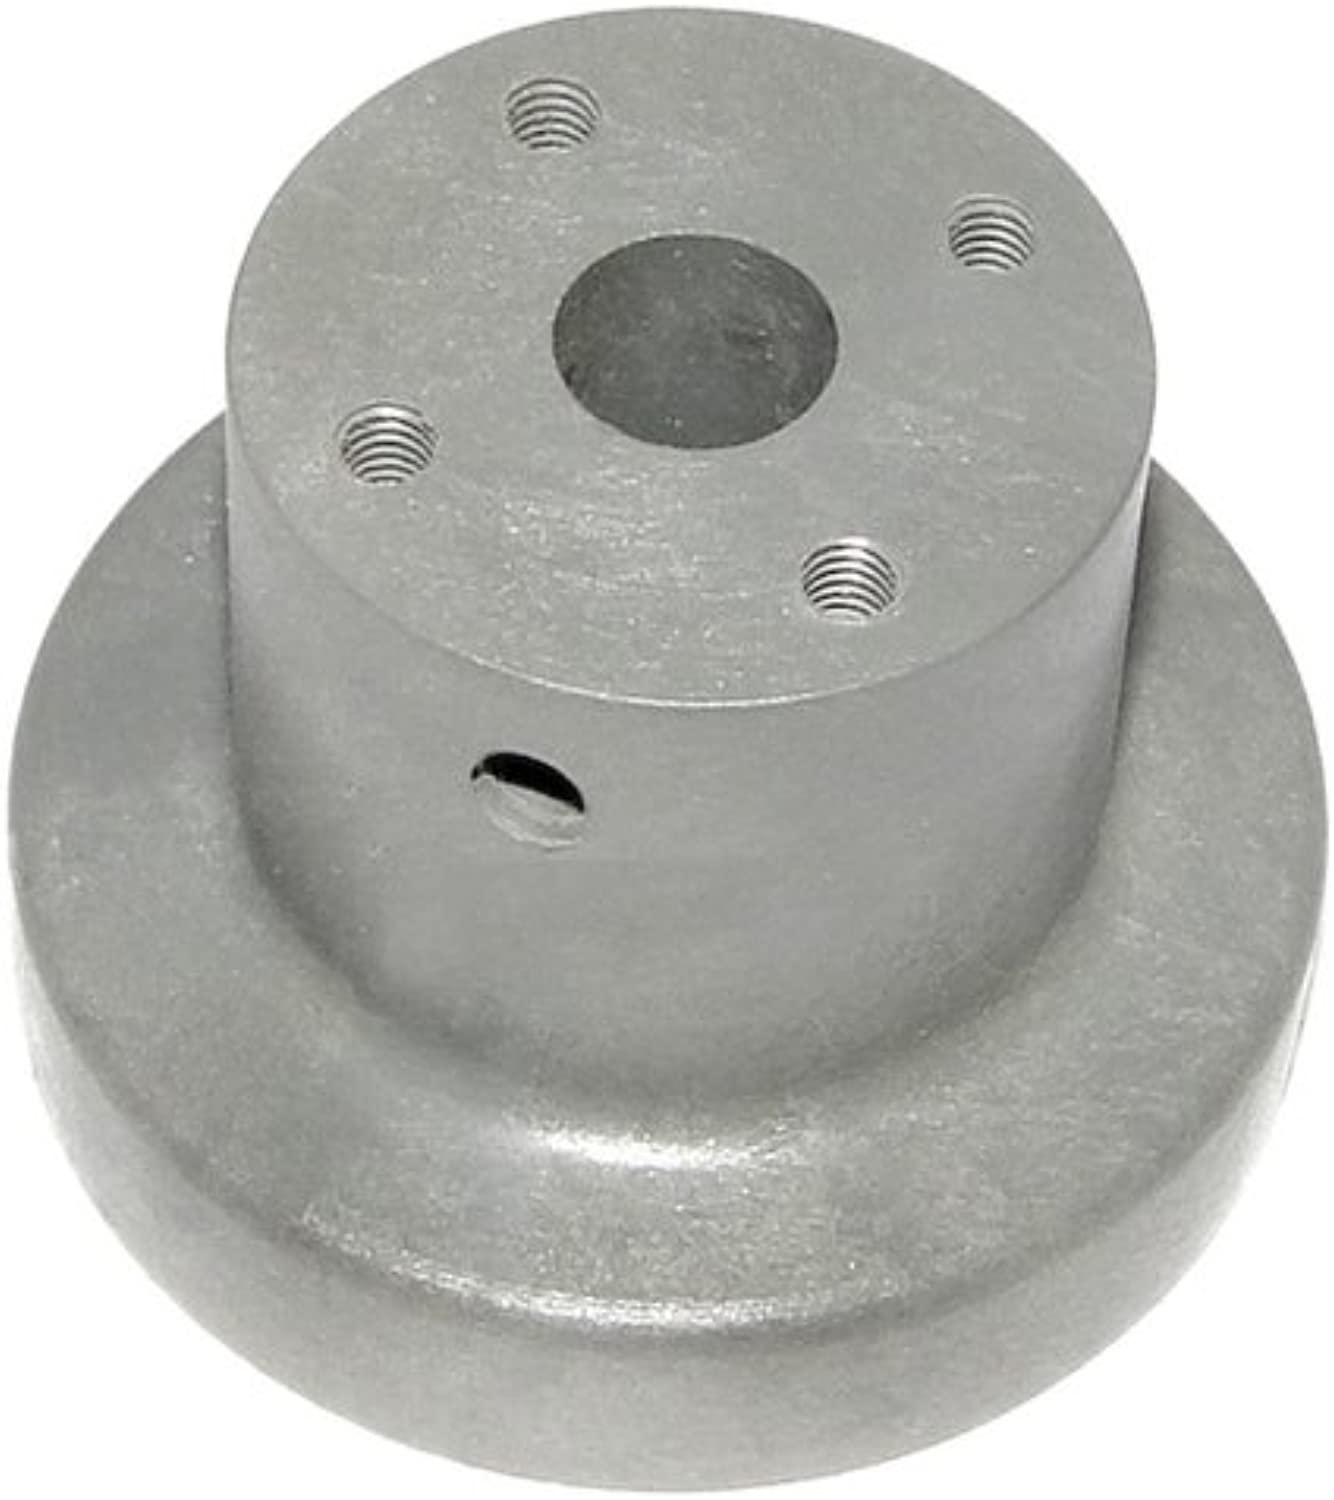 Hayward RCX2102 Drive Collar Replacement for Hayward Kingshark2 and Plus Commercial Cleaner